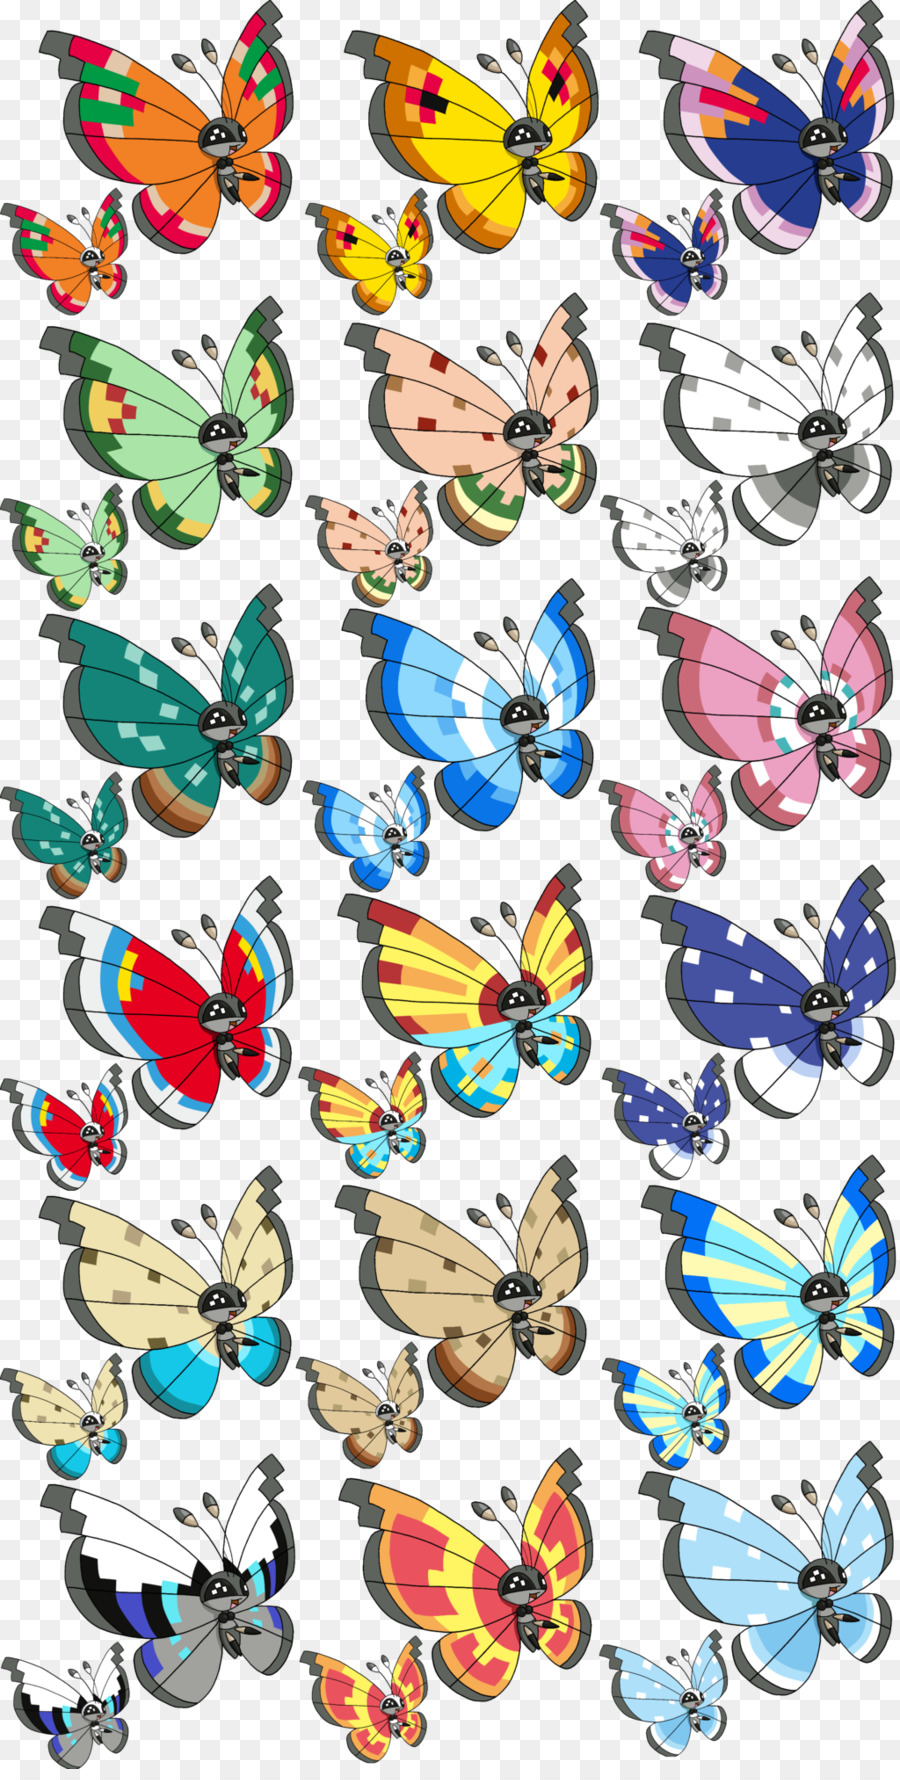 Picture of: Butterfly Cartoon Png Download 1024 2013 Free Transparent Vivillon Png Download Cleanpng Kisspng